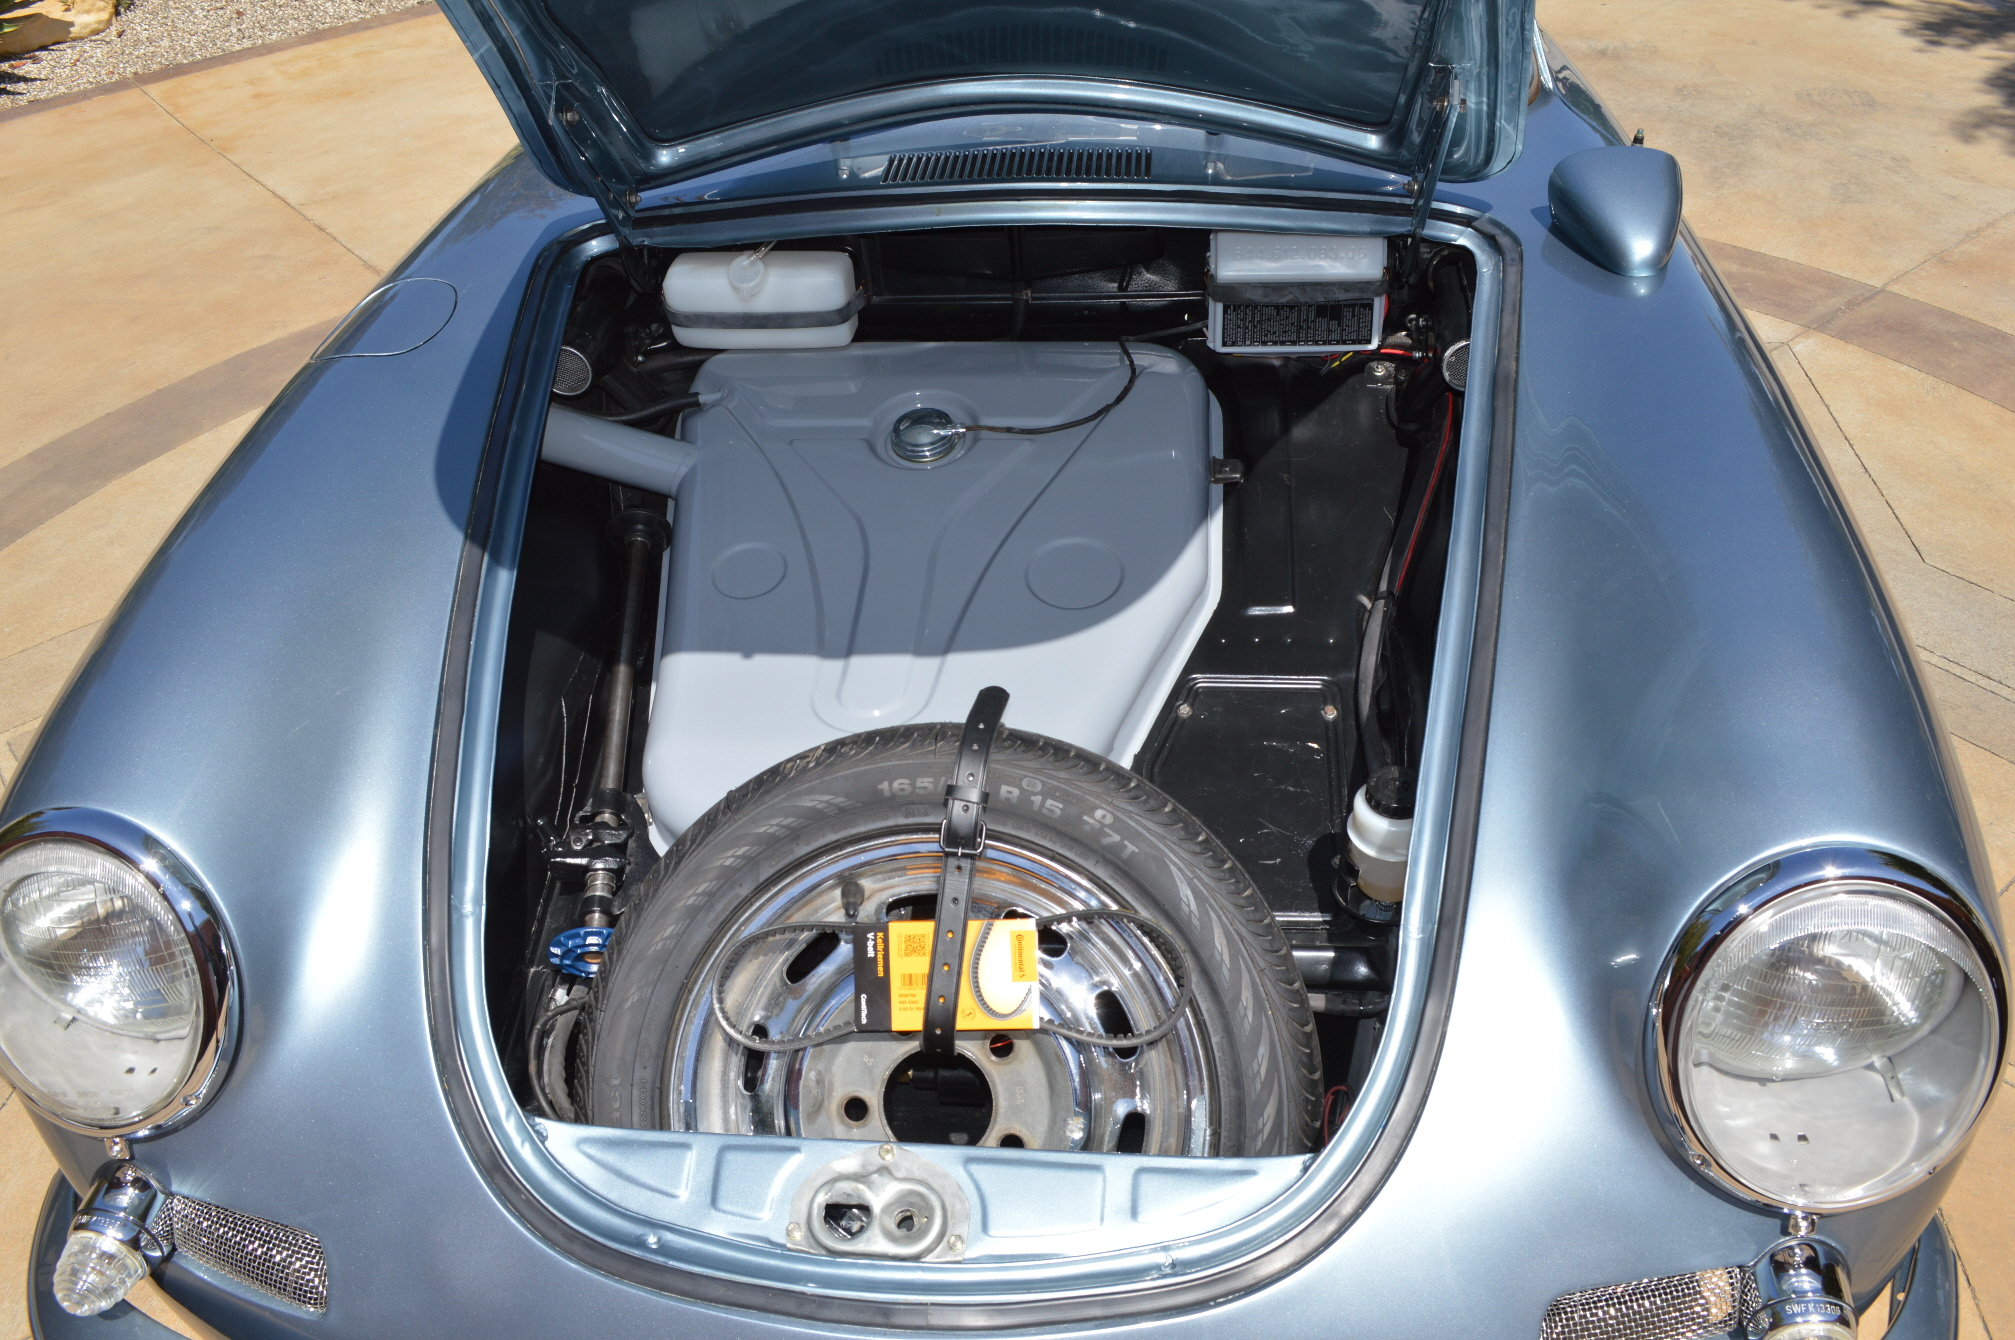 In the re-build any rust was professionally repaired including the floor pans.